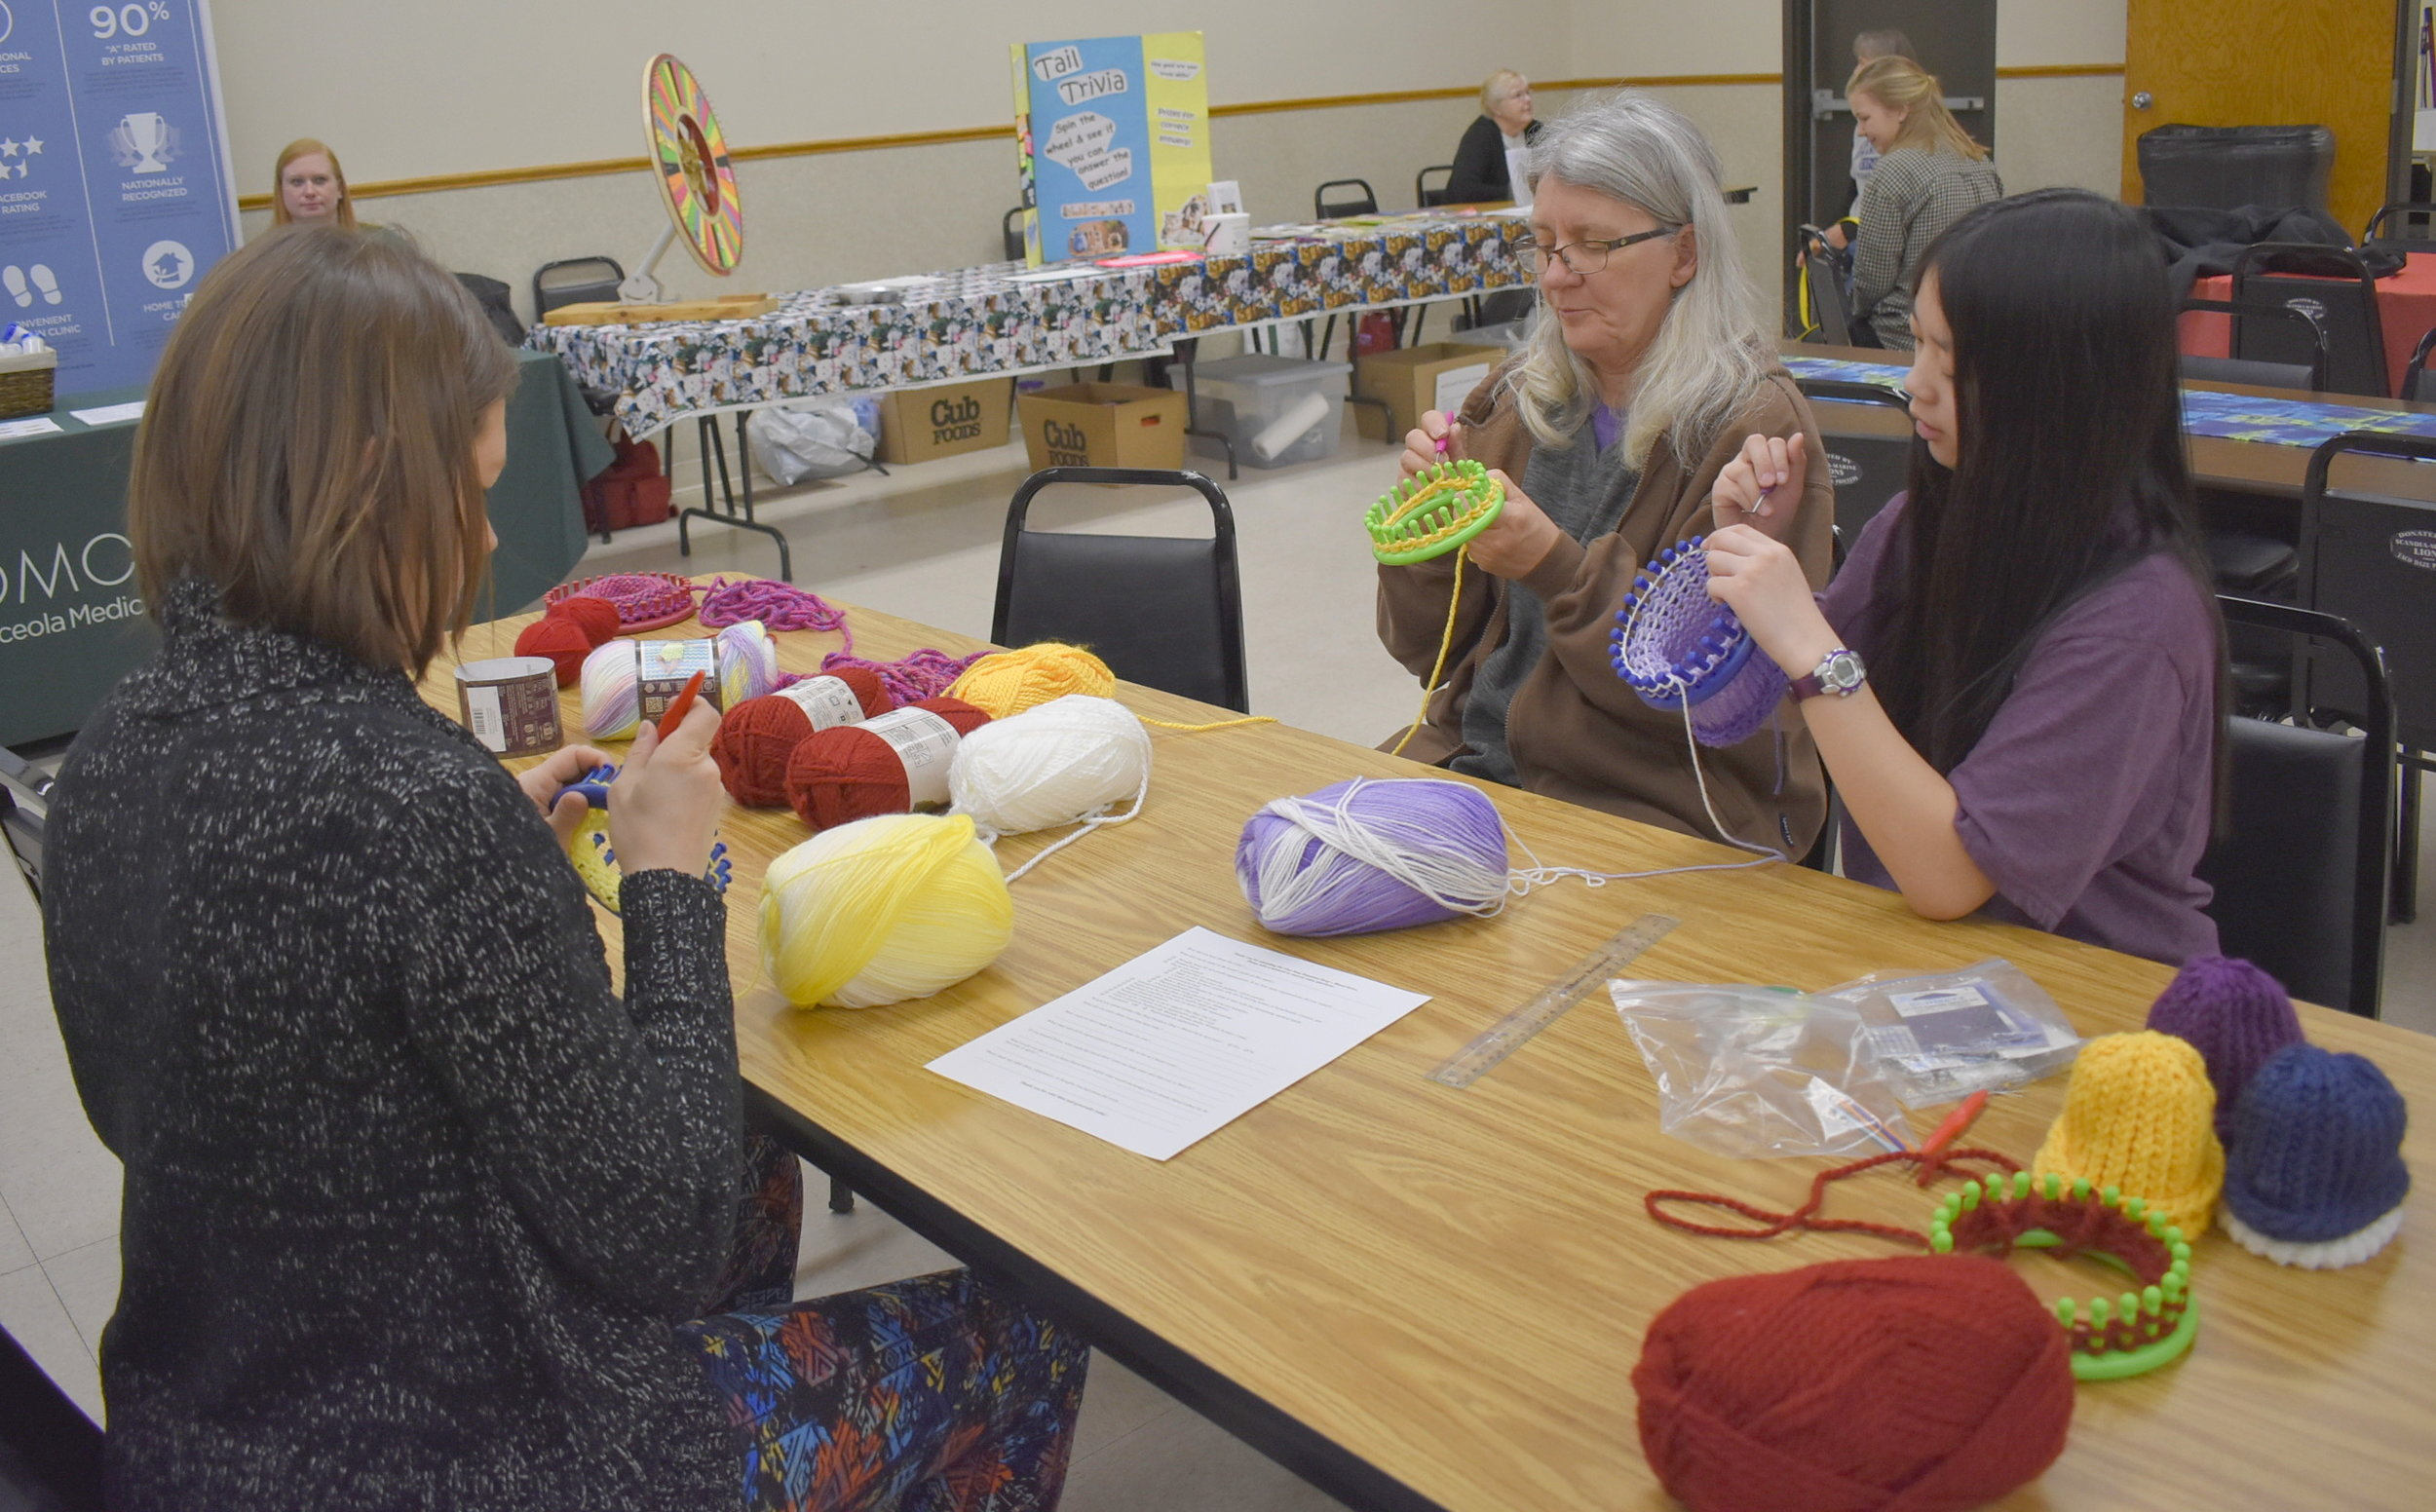 At the One Stop Donation Drop, attendees could knit hat for babies born at Fairview Medical Center in Wyoming (MN); and - at the table behind that - make fleece-tied hats for children undergoing chemotherapy at Children's Hospital in Minneapolis. Representatives from Osceola Medical Center were on hand to share information about diabetes prevention; and volunteers from Northwoods Humane Society had games and prizes, accepted donations, and brought two dogs available for adoption. One dog was adopted that day!